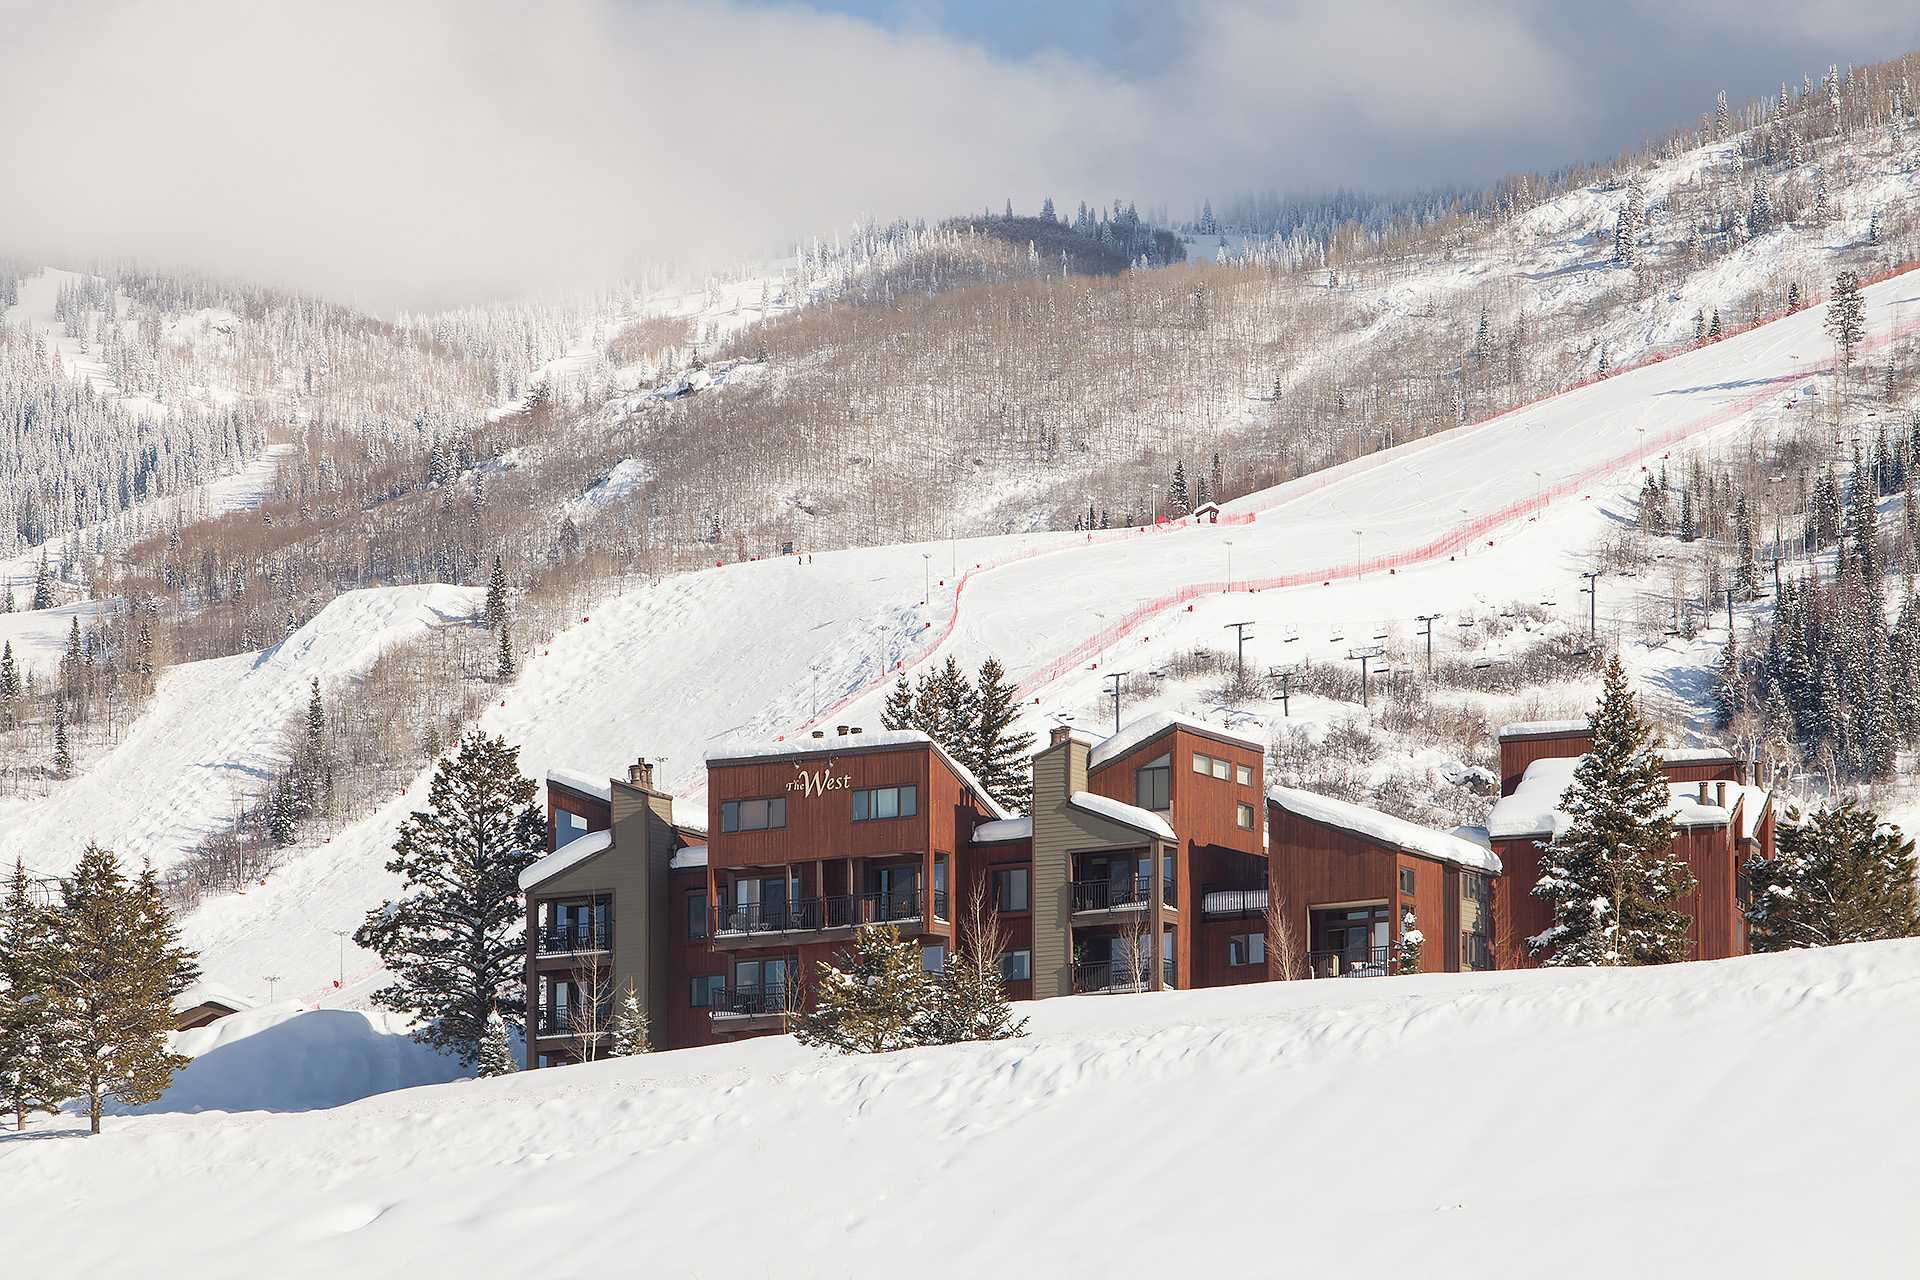 Steamboat springs lodging steamboat springs colorado for Cabins in steamboat springs